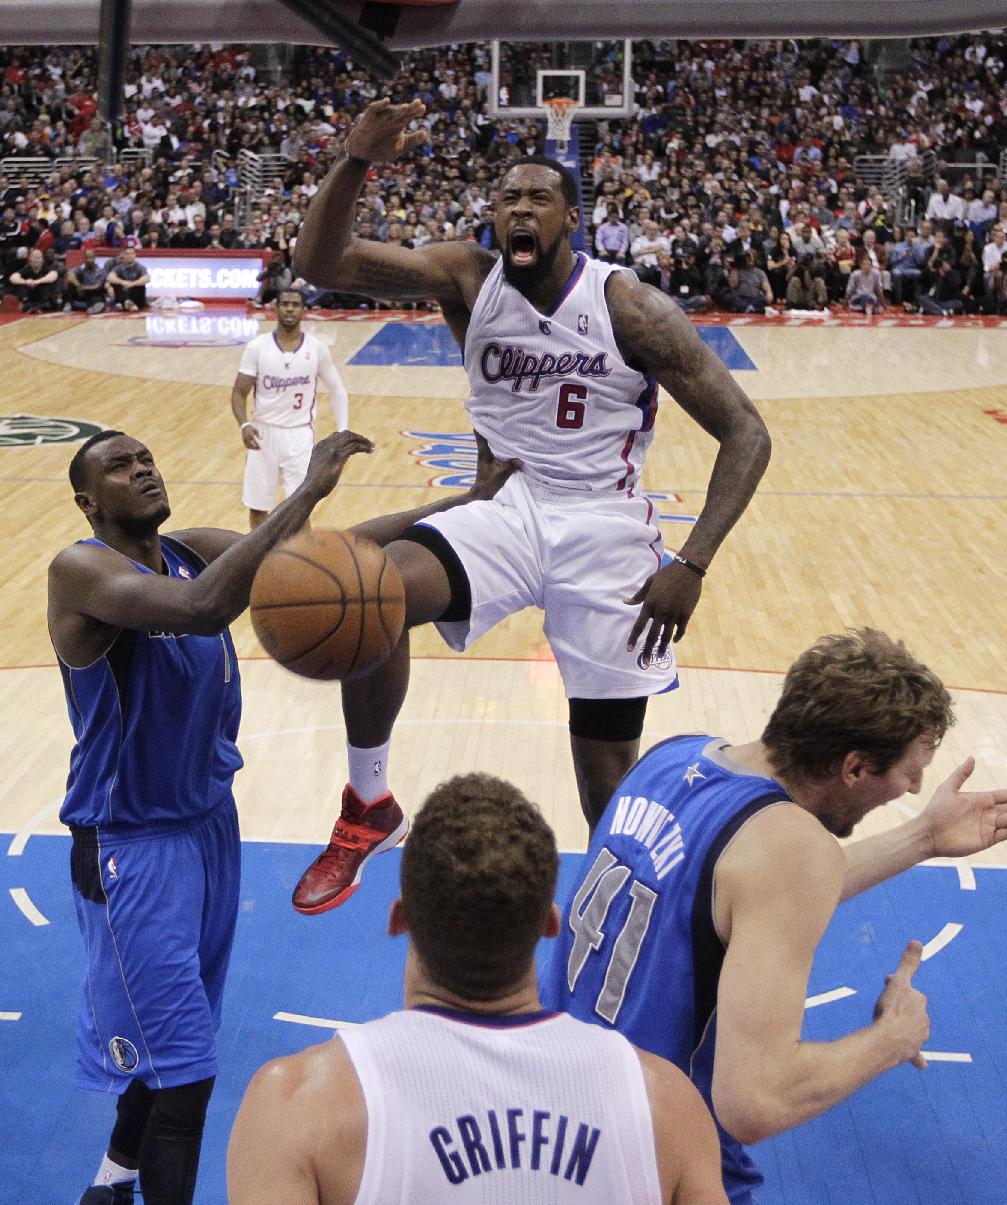 Los Angeles Clippers' DeAndre Jordan (6) dunks in front of Dallas Mavericks' Samuel Dalembert (1) and Dirk Nowitzki (41) during the first half of an NBA basketball game Thursday, April 3, 2014, in Los Angeles